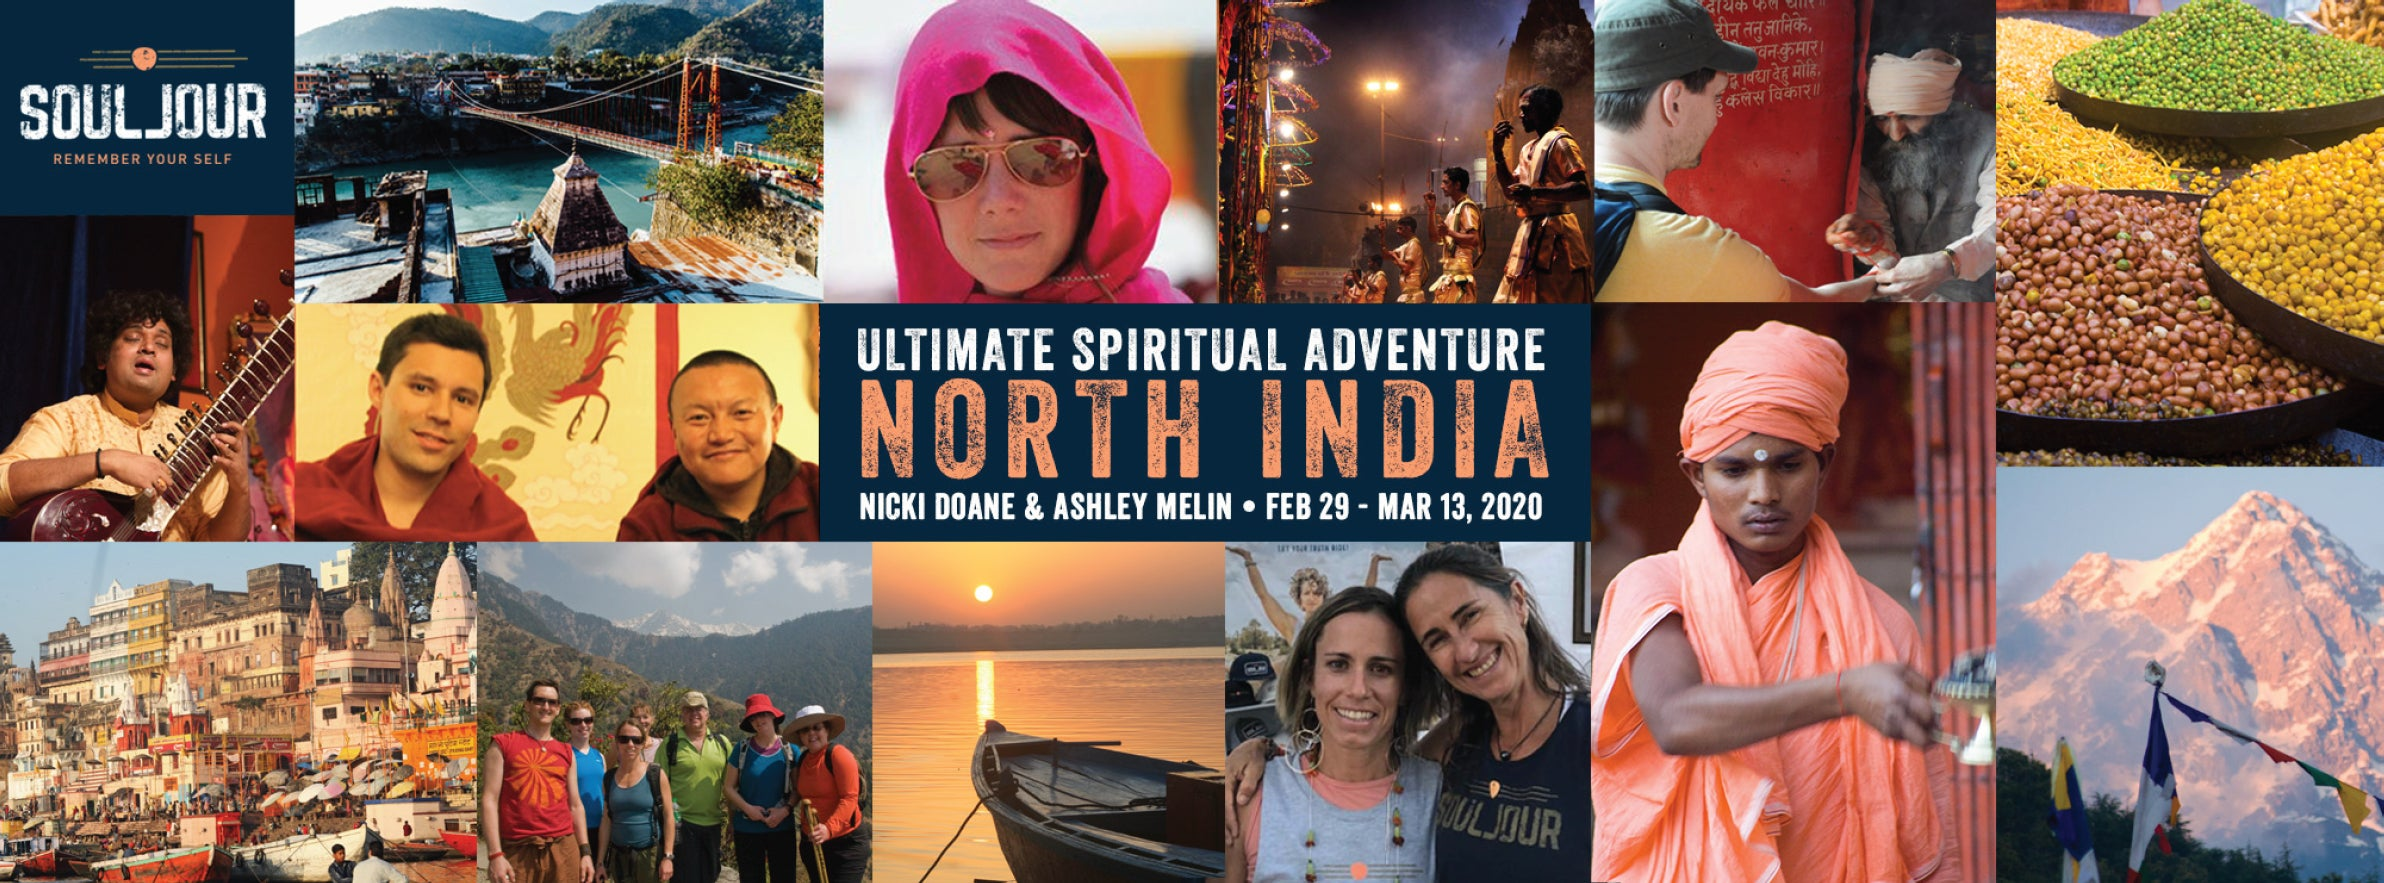 North India Adventure Yoga Trip